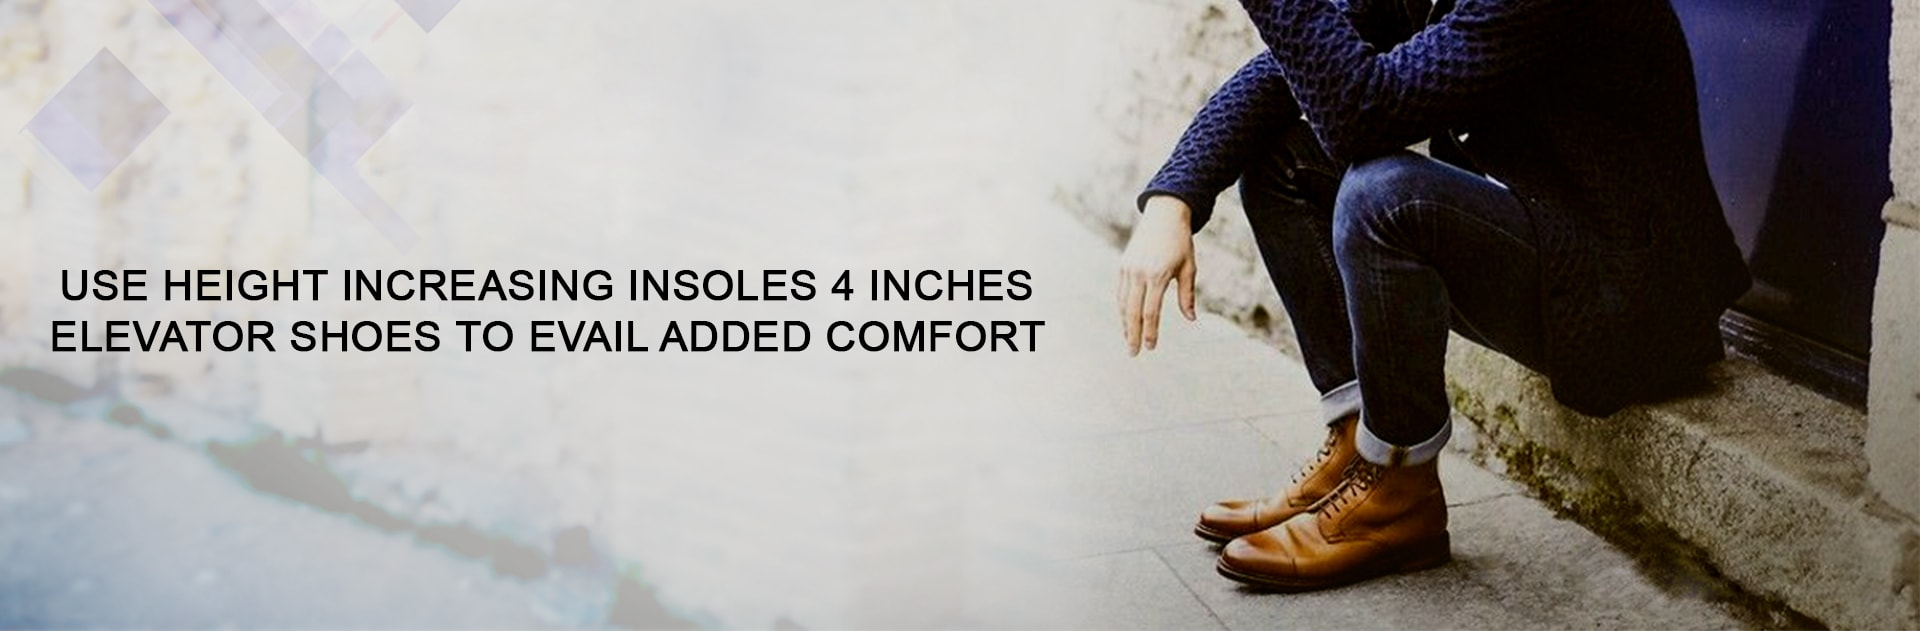 Use height increasing insoles 4 inches elevator shoes to avail added comfort